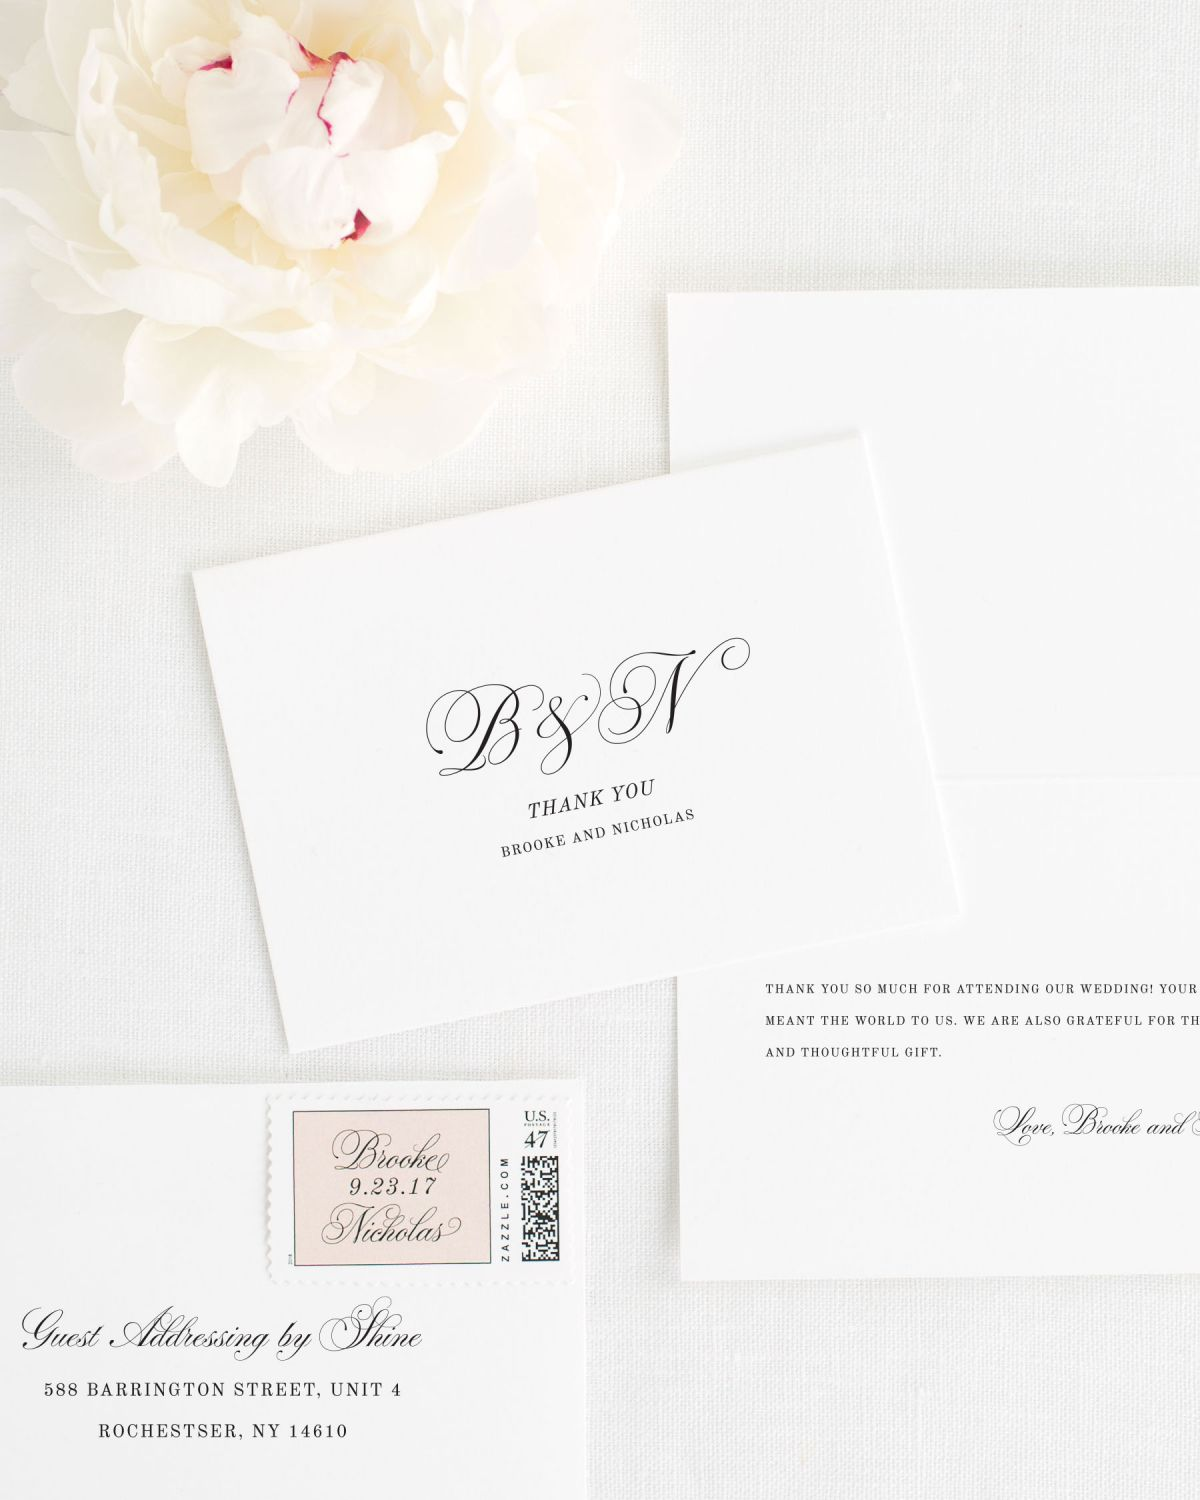 Monogram Thank You Cards for Weddings